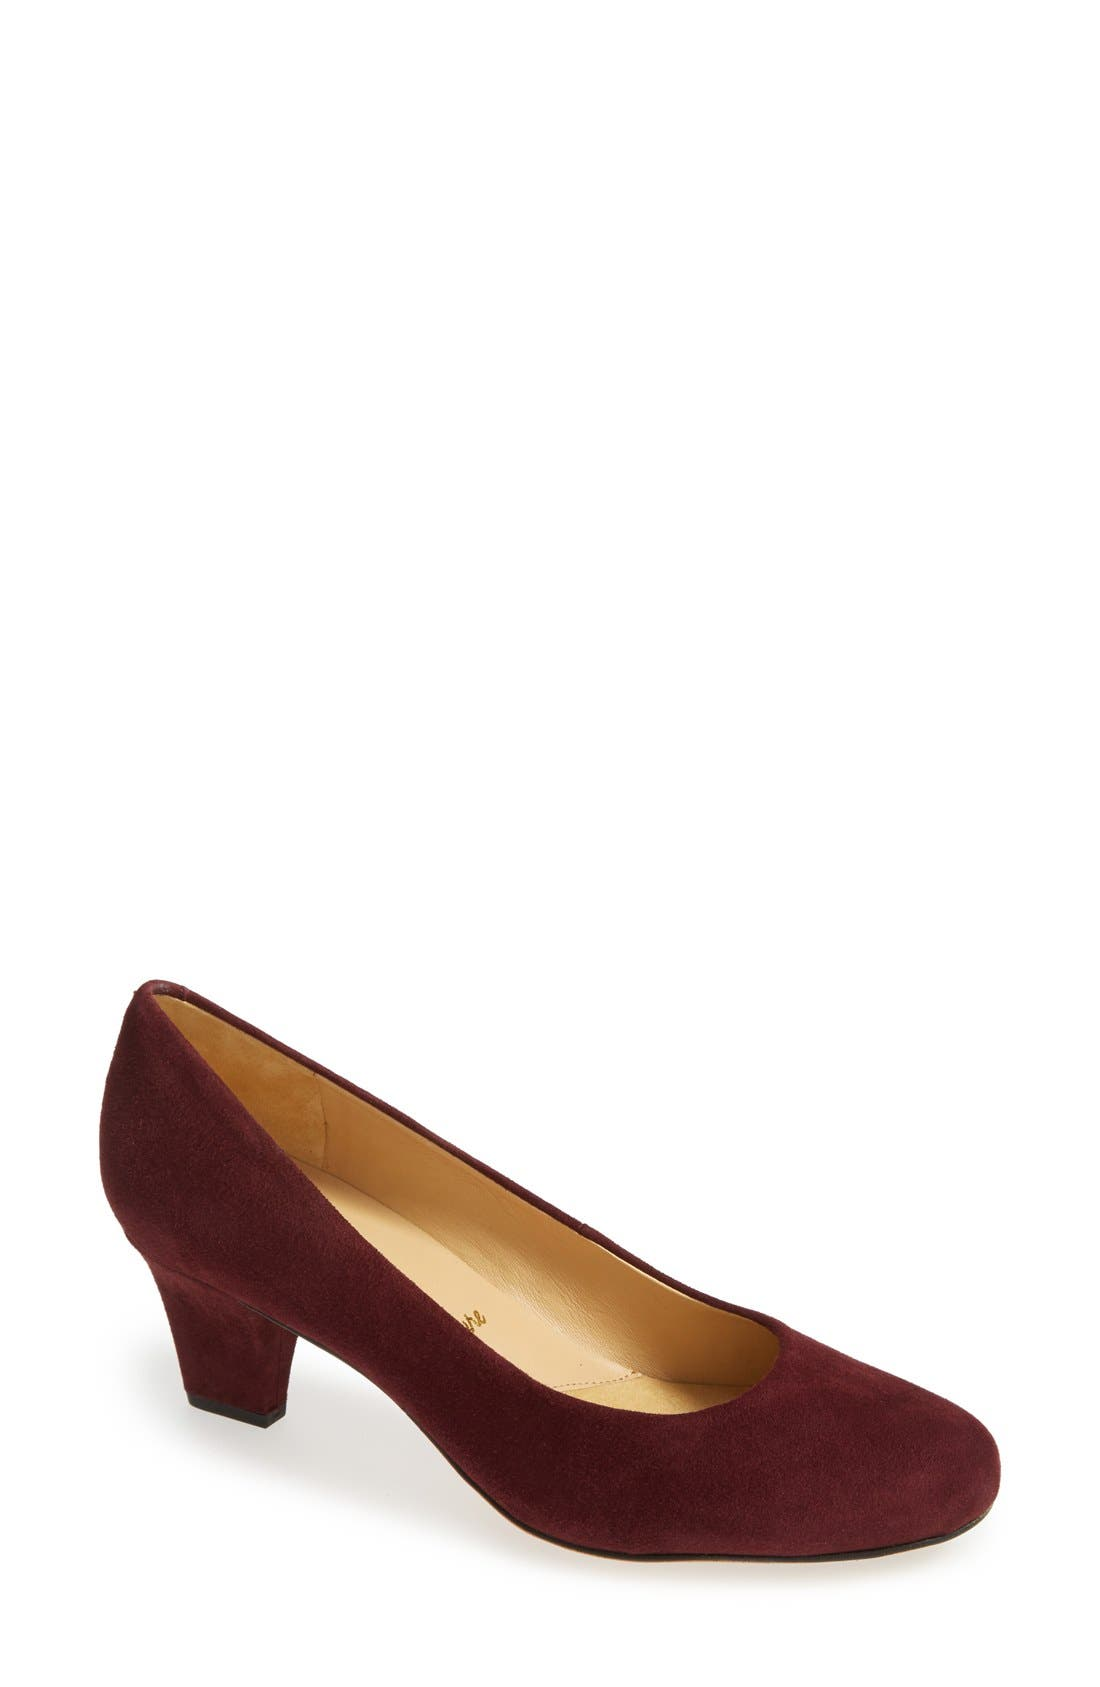 Alternate Image 1 Selected - Trotters Signature 'Penelope' Pump